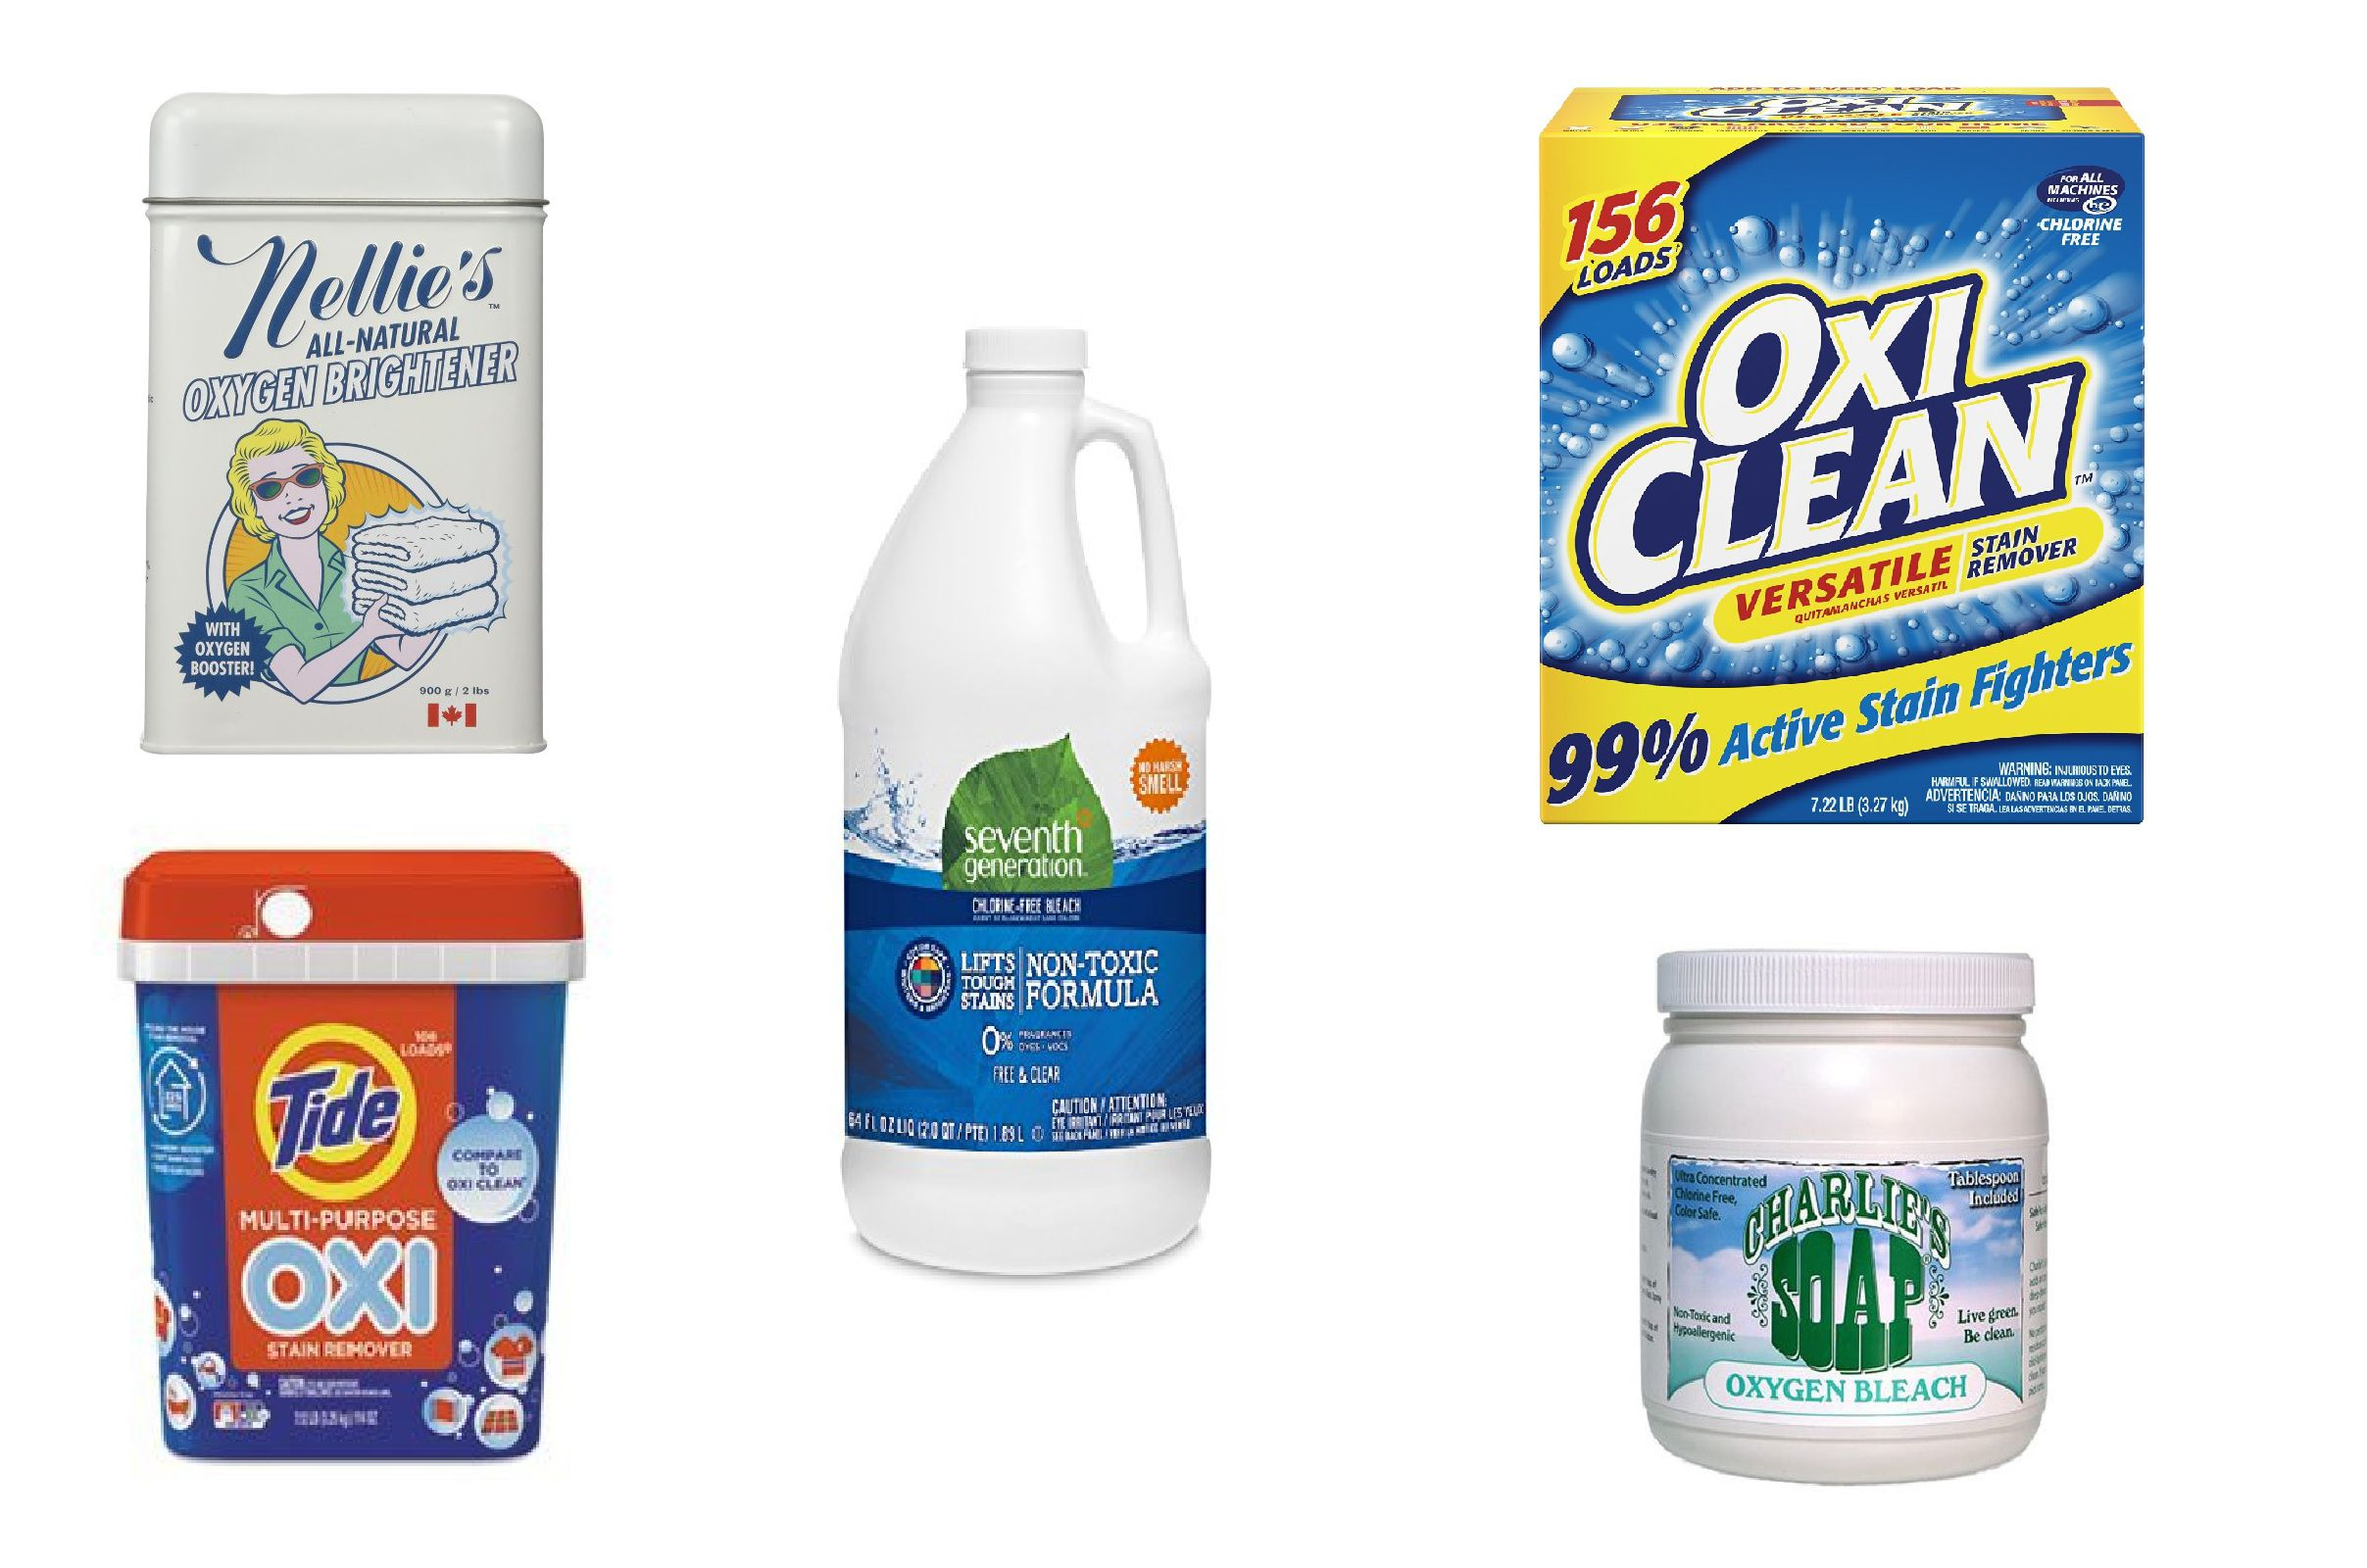 How Do You Spell Oxygen >> Oxygen Bleach for Laundry and Stain Removal